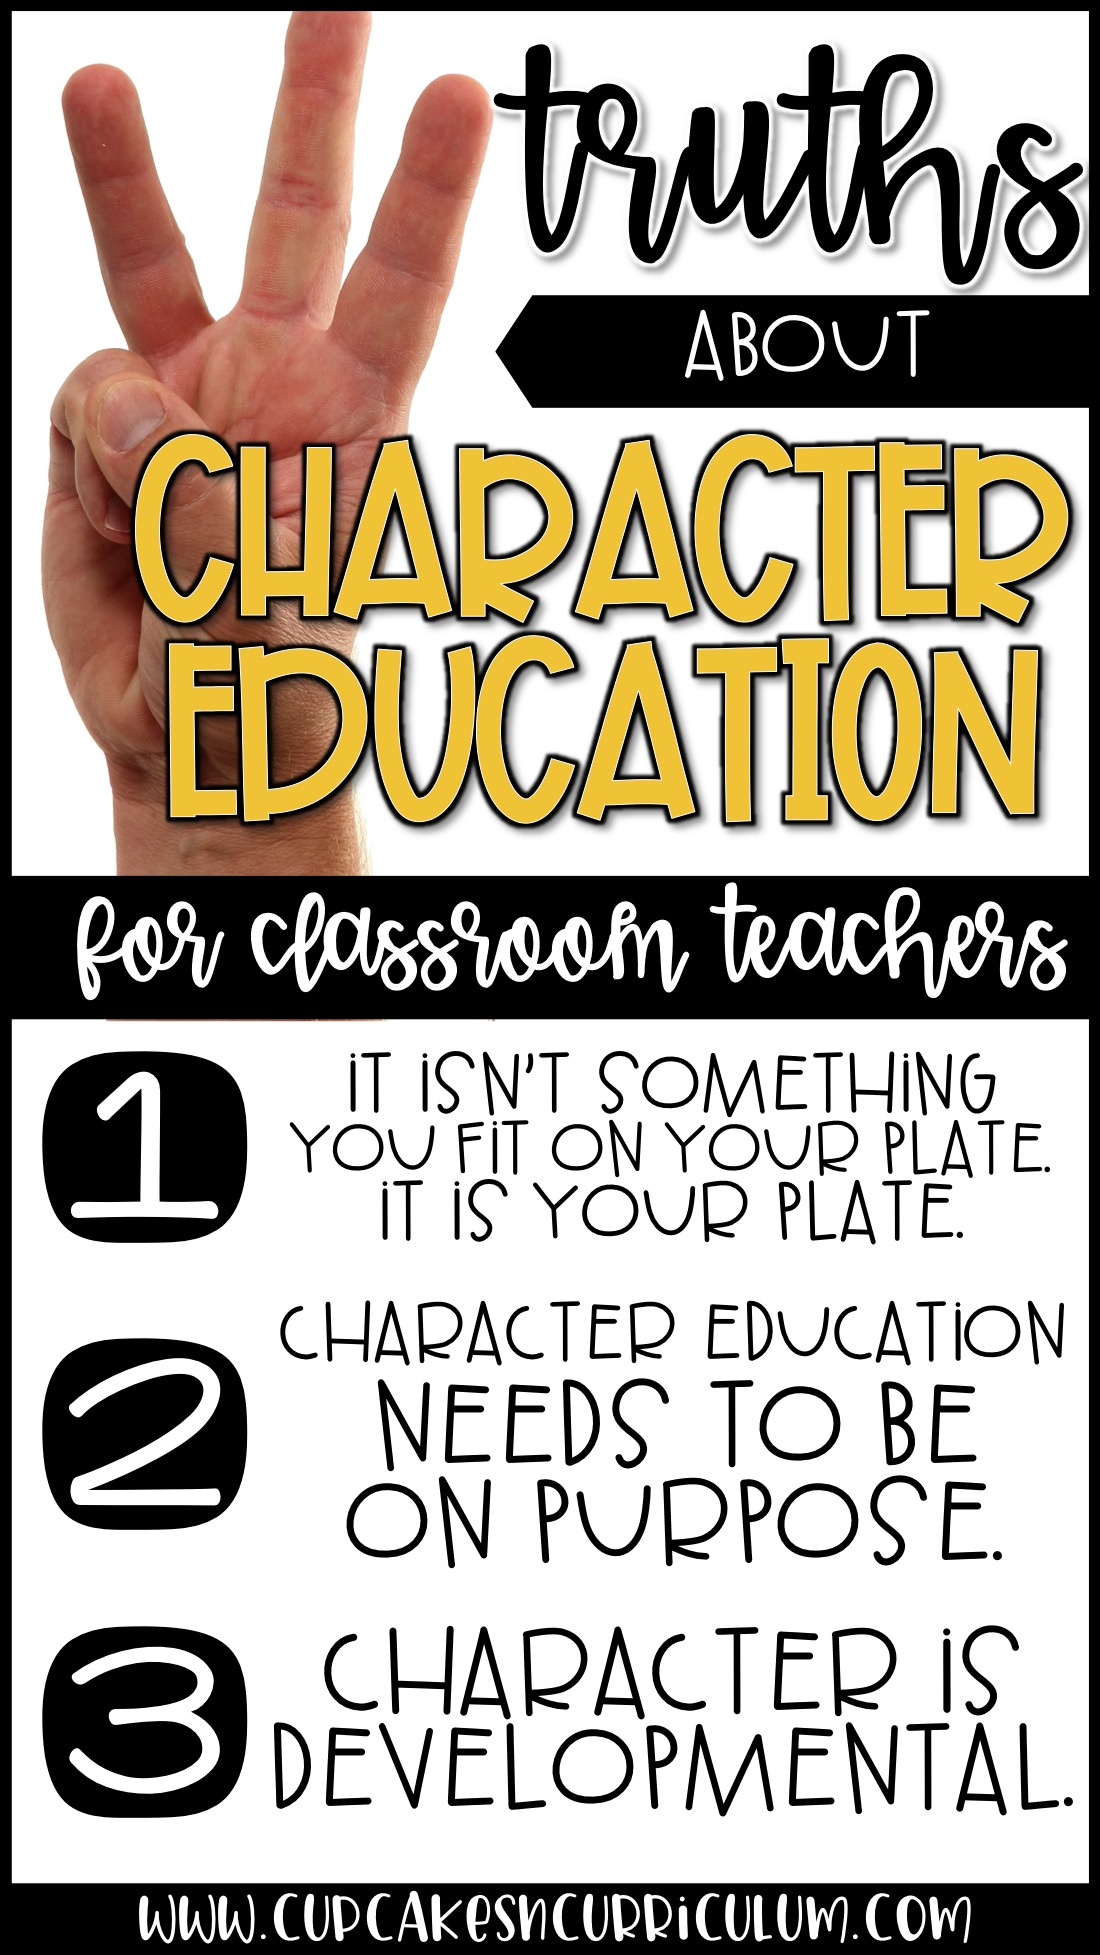 http://www.cupcakesncurriculum.com/wp-content/uploads/2017/09/Truths-about-Character-Ed-Pin.jpg